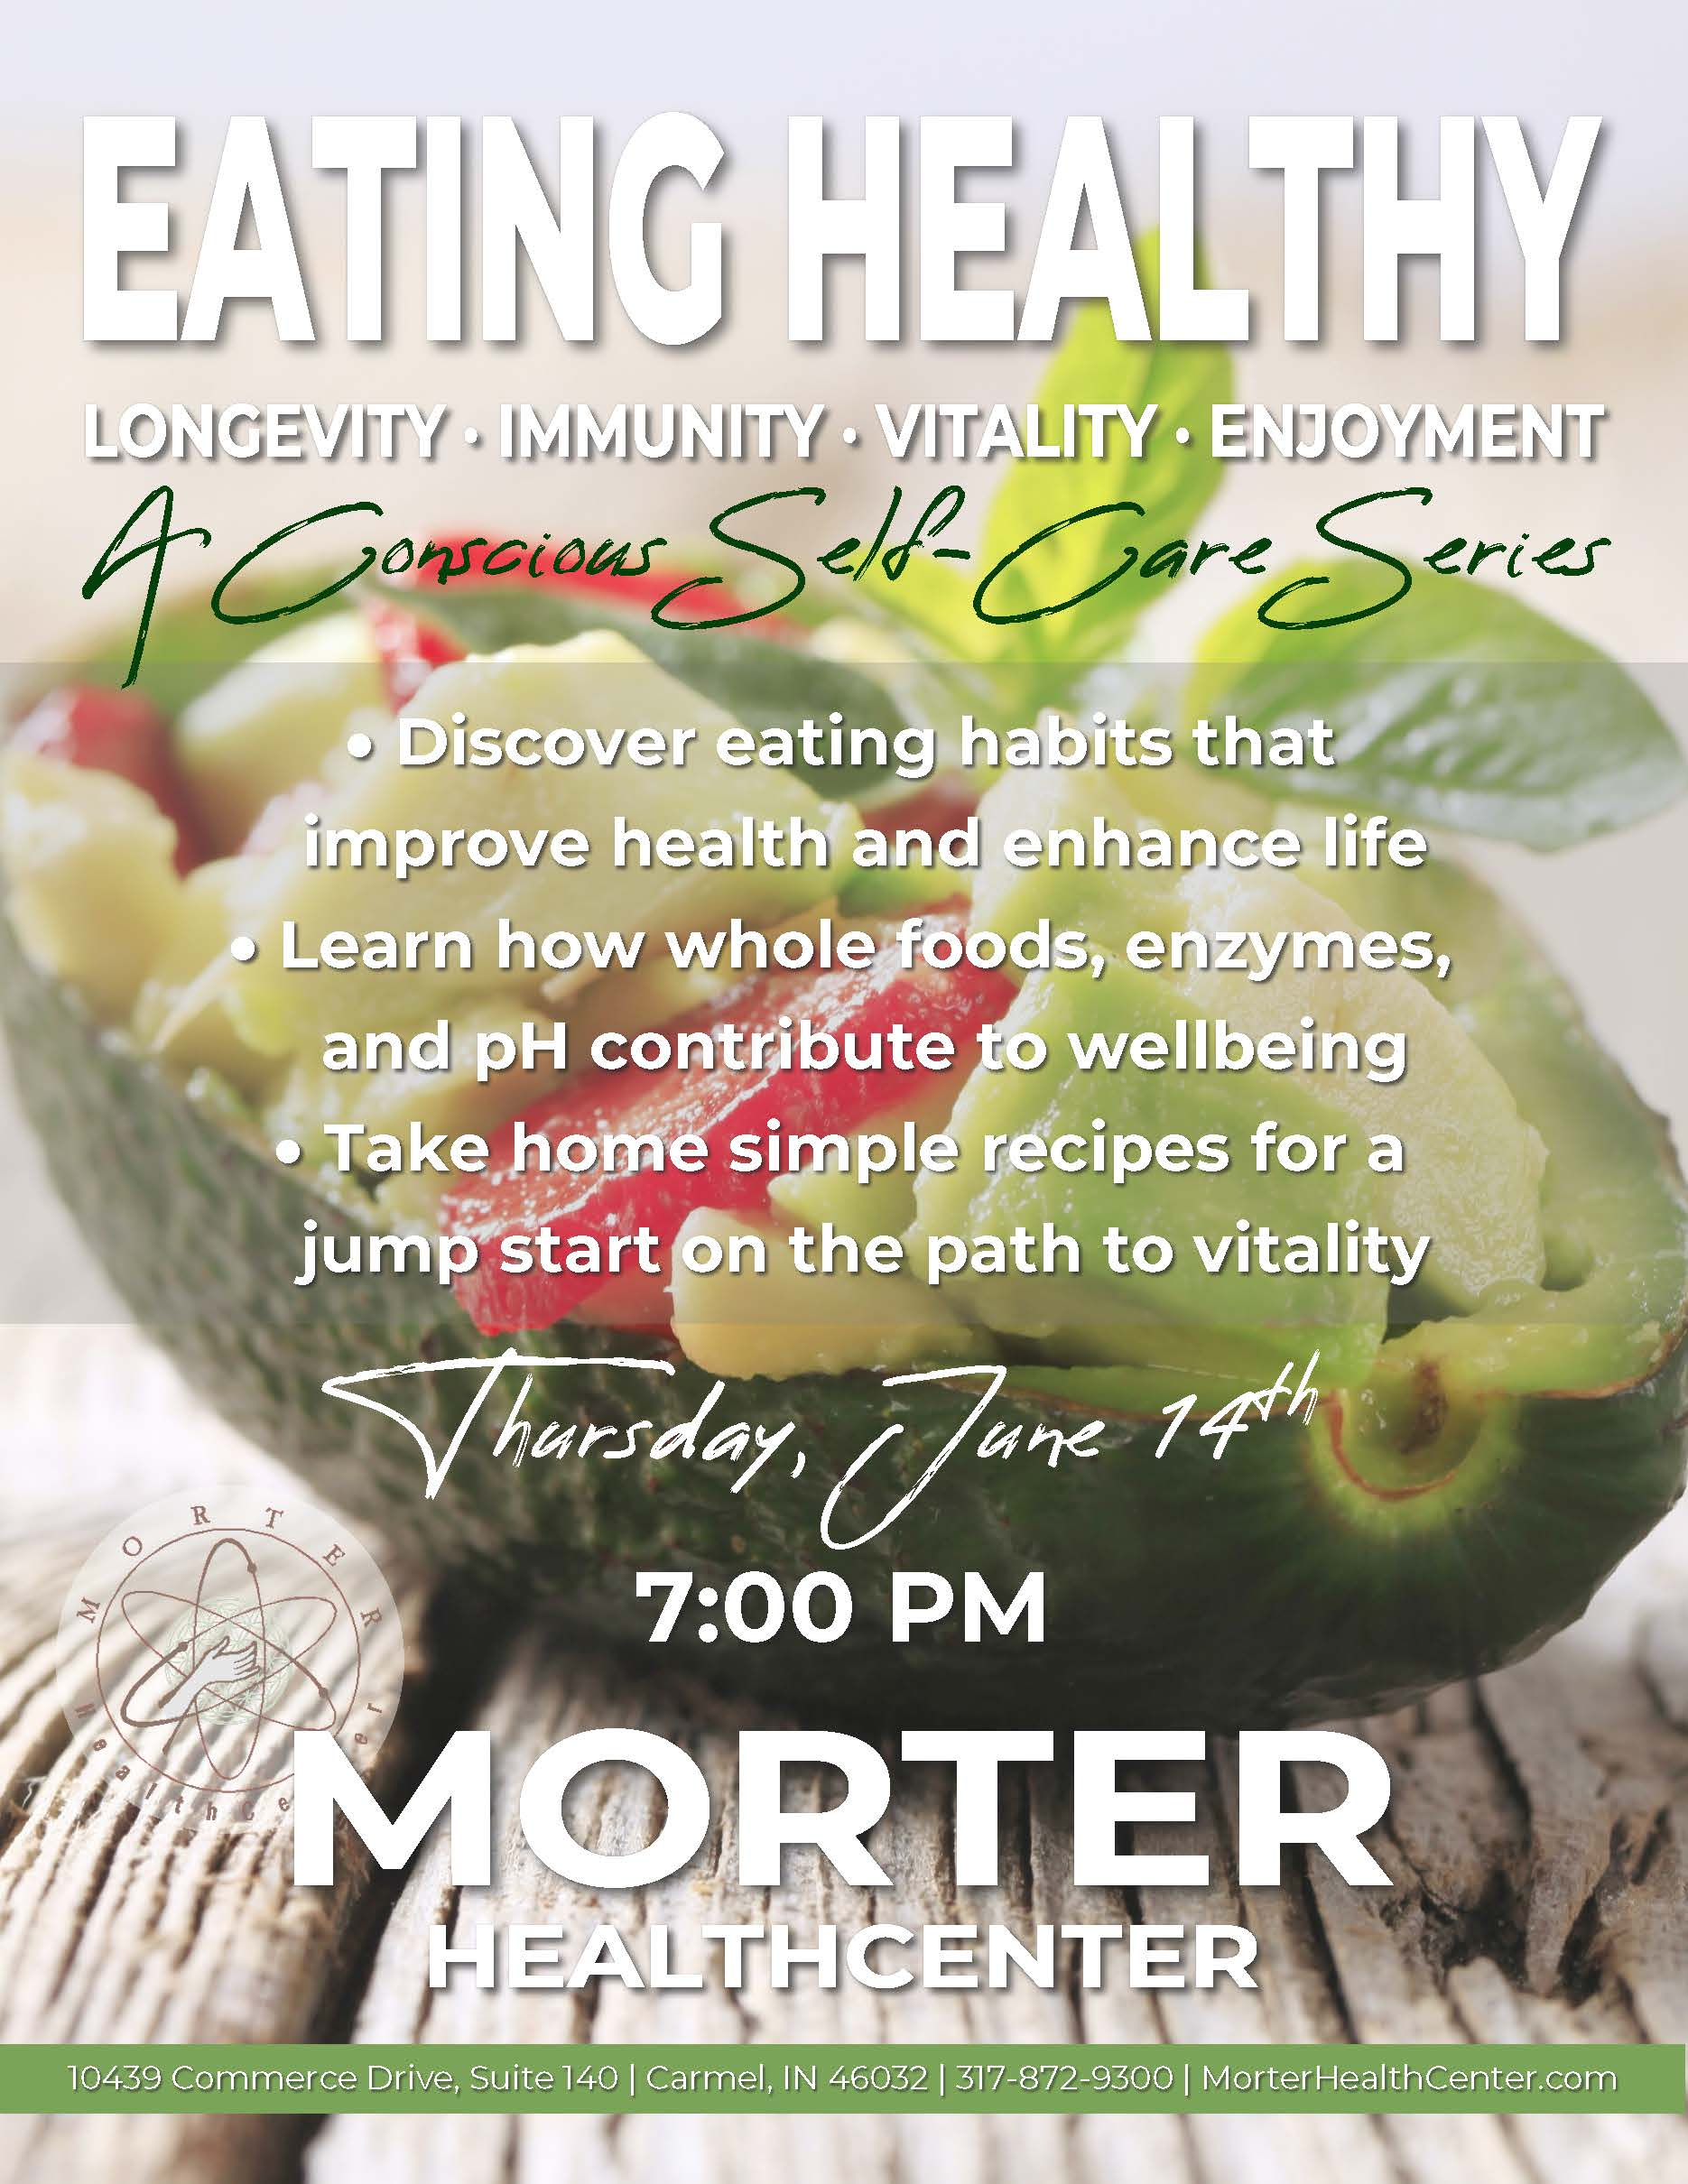 EATING HEALTHY FLYER 2018 cnl no photos finished.jpg